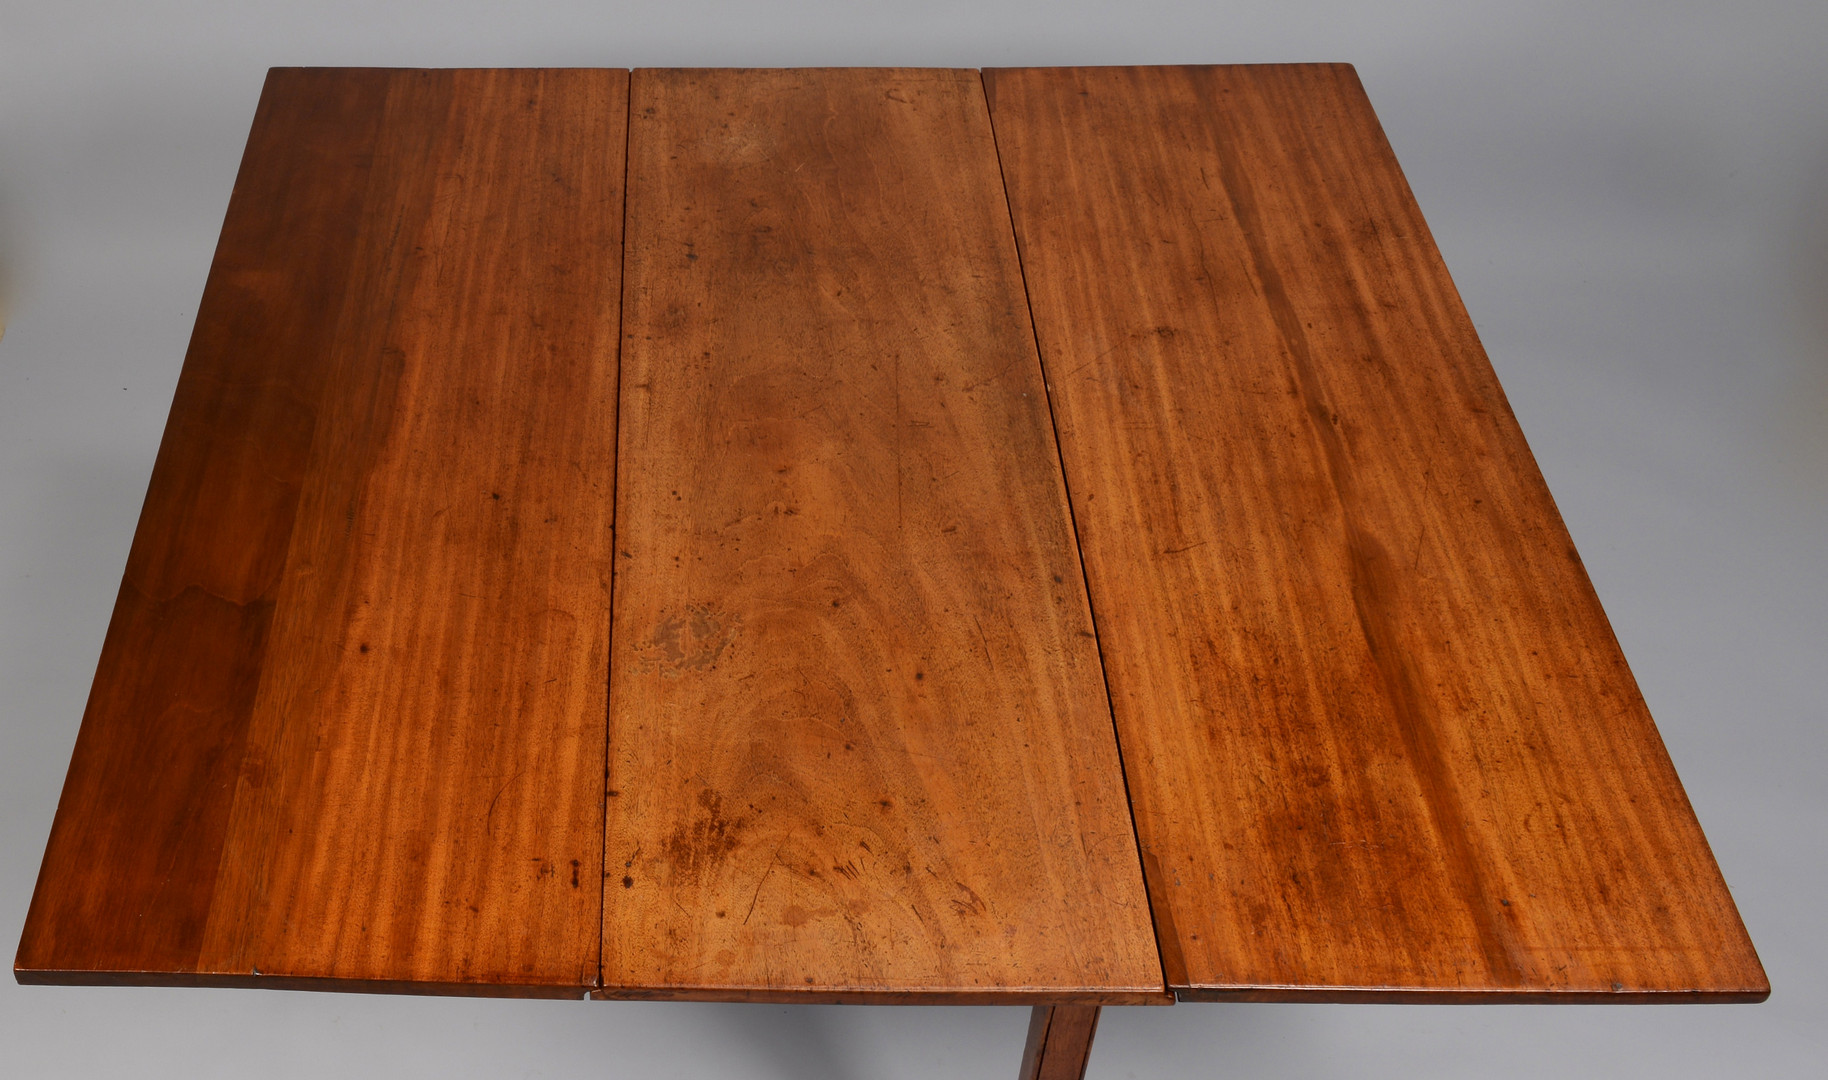 Lot 286: Chippendale Drop Leaf Table, circa 1800